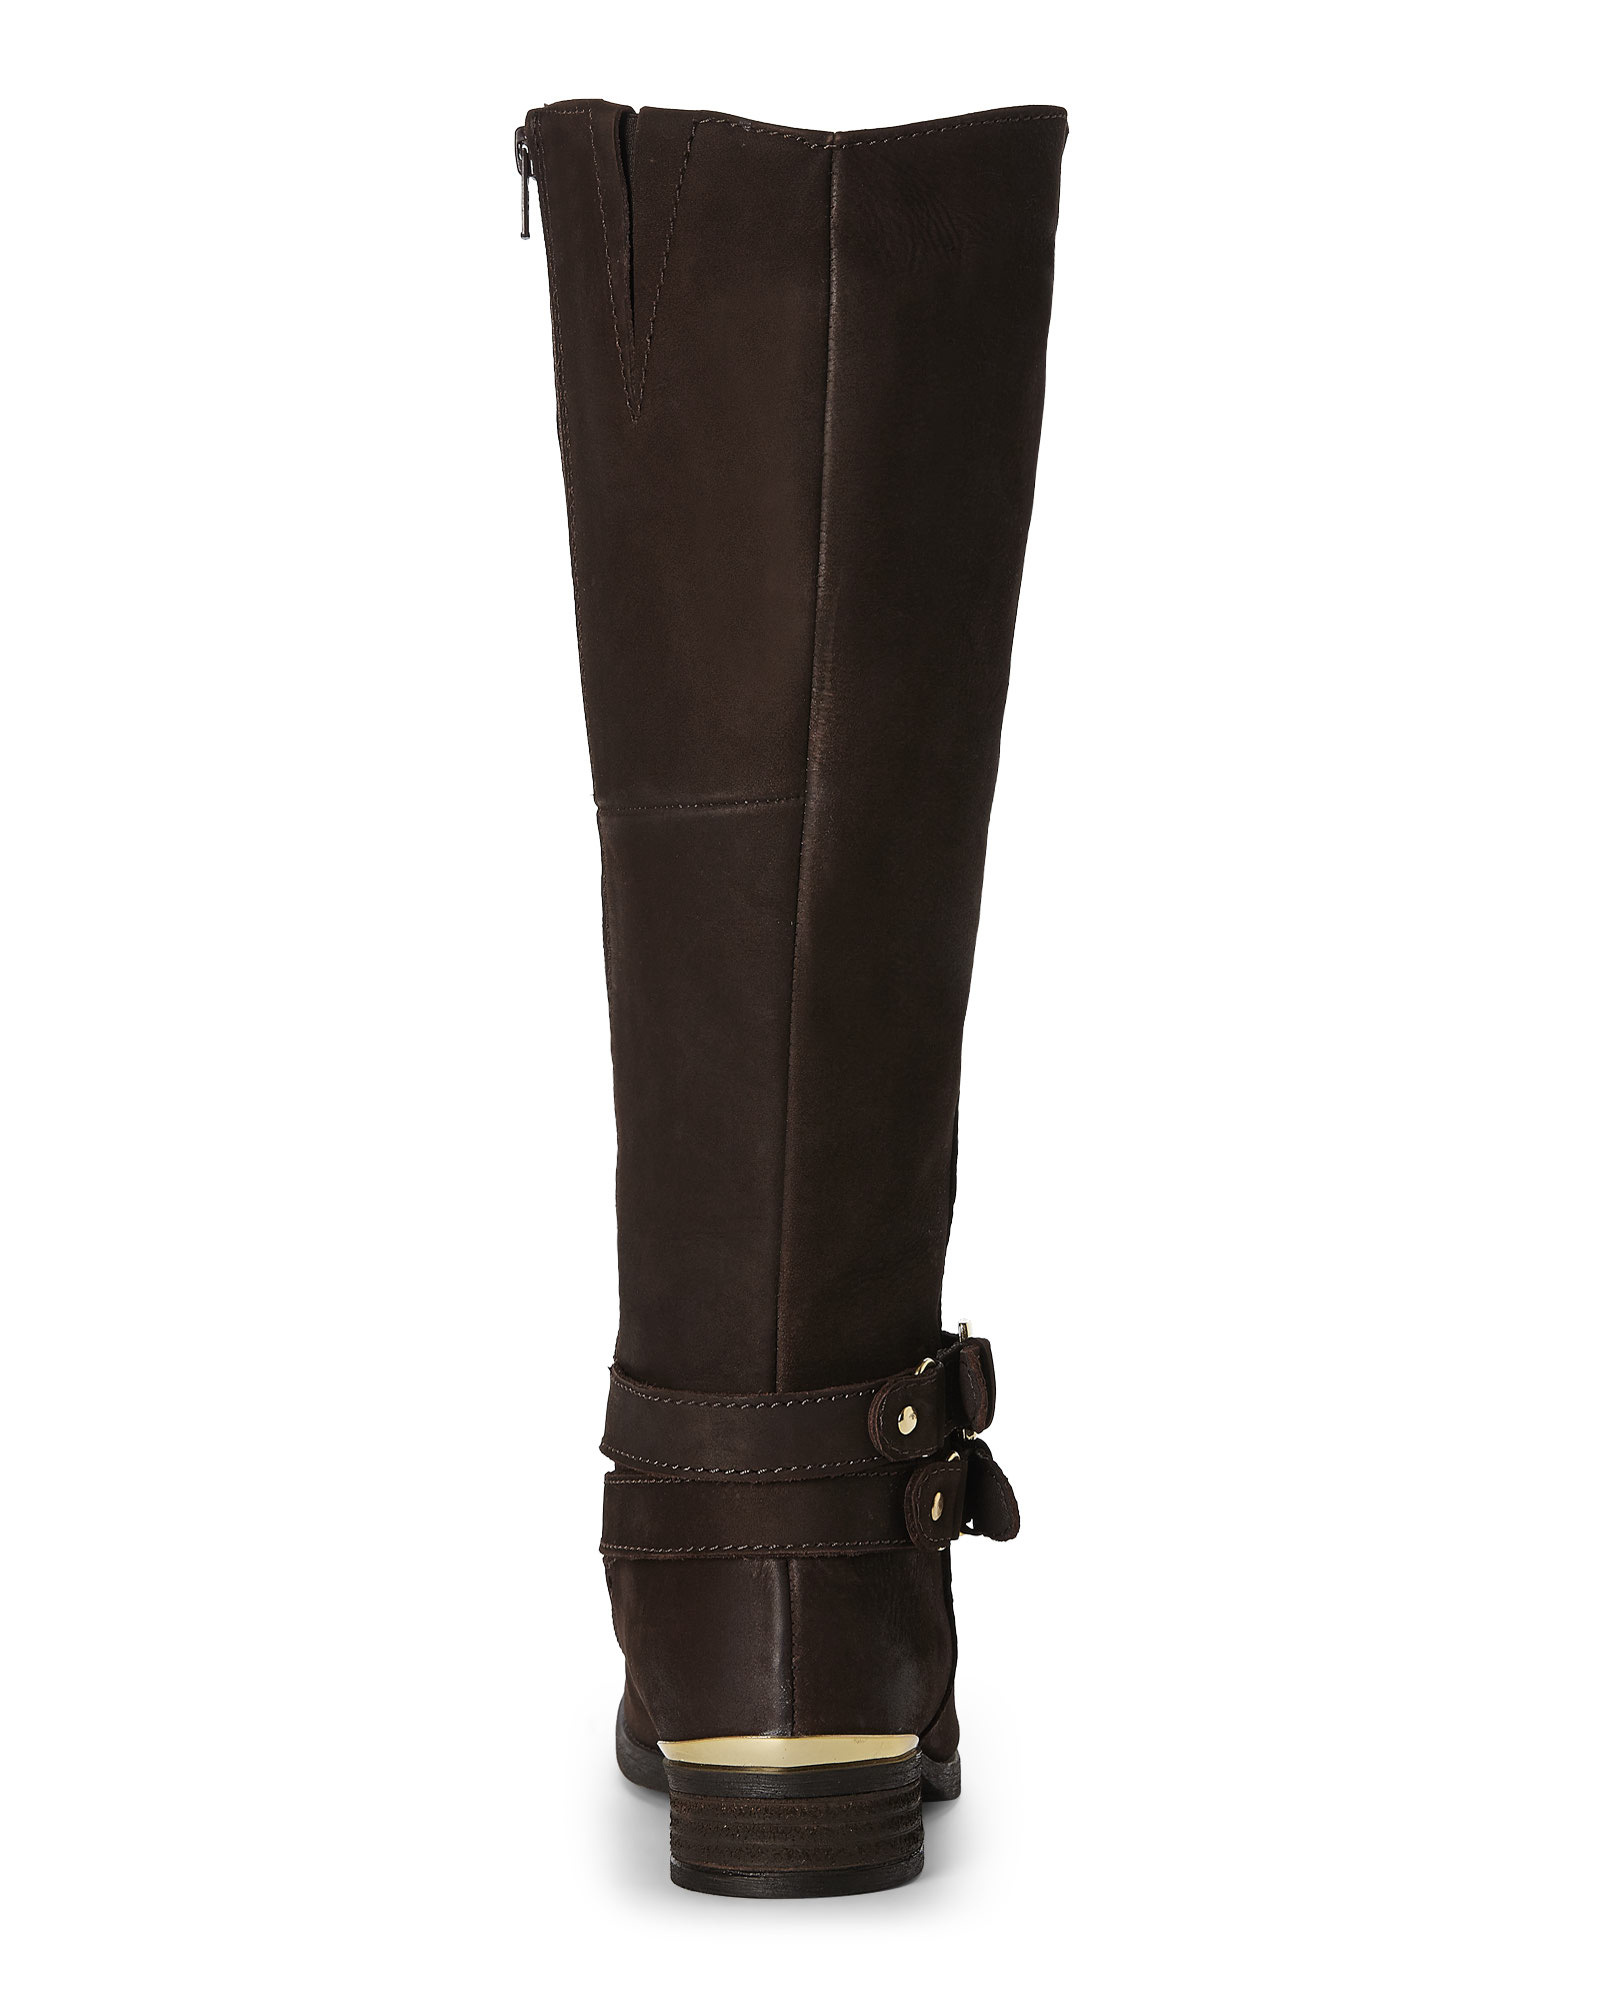 Steve madden Chocolate Amill Riding Boots in Brown | Lyst